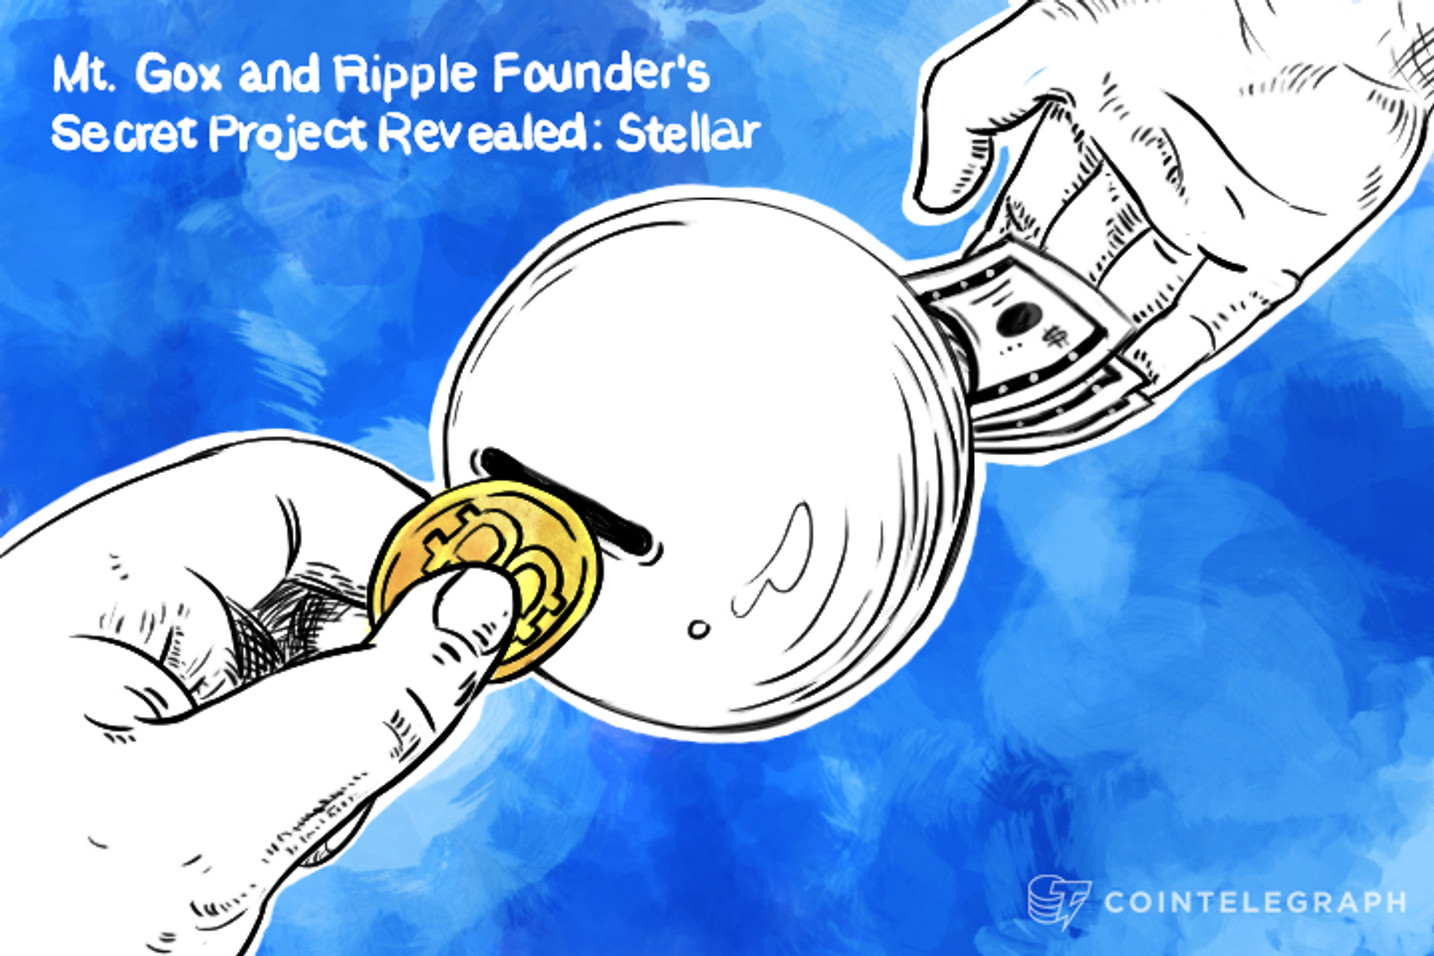 Mt. Gox And Ripple Founder's Secret Project Revealed: Stellar